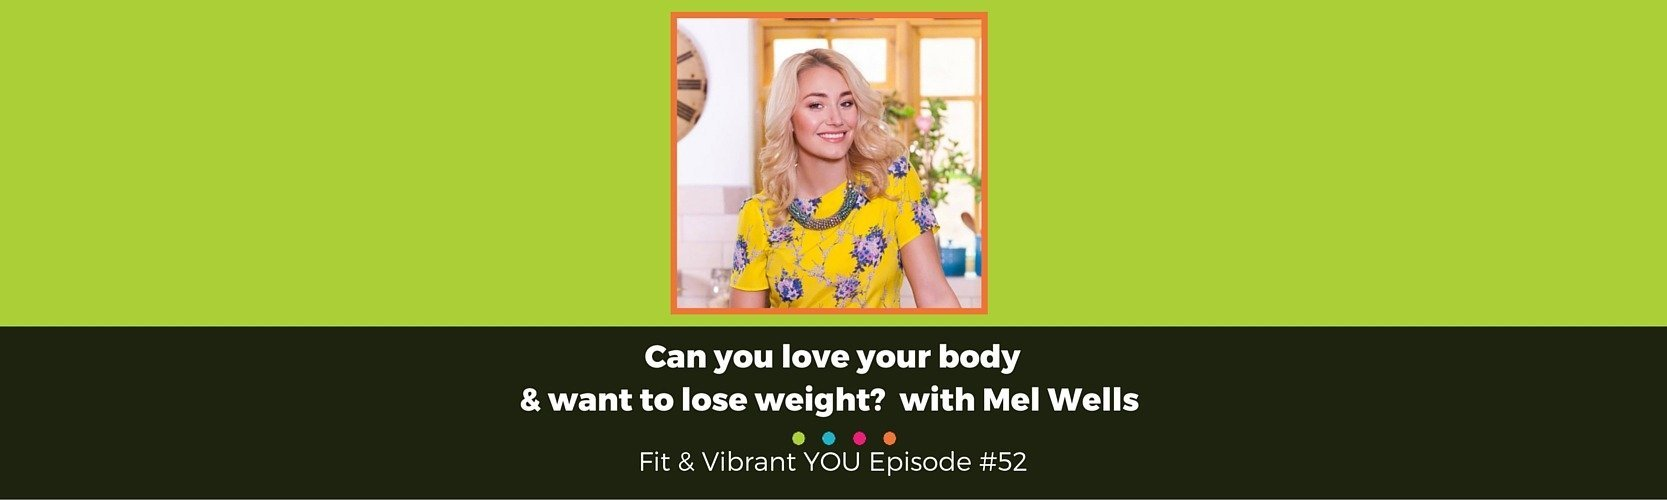 FVY 52: Can you love your body and want to lose weight? with Mel Wells